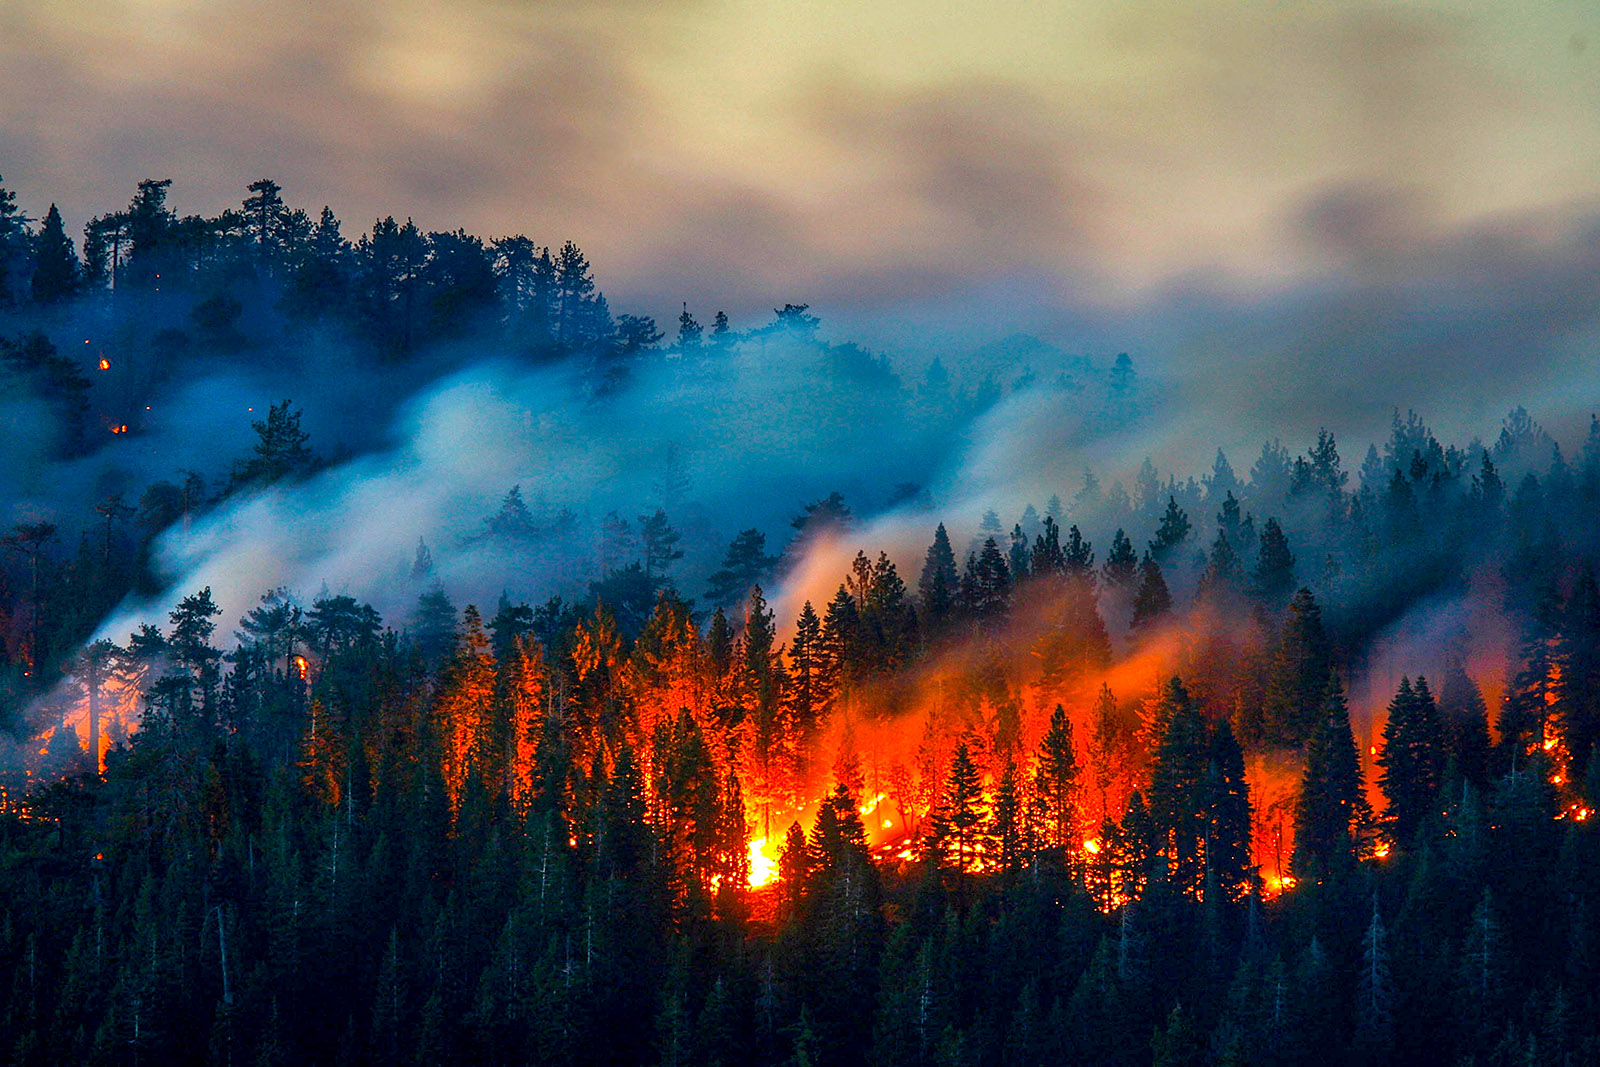 Can We Use Nature to Mitigate Wildfire Risk?